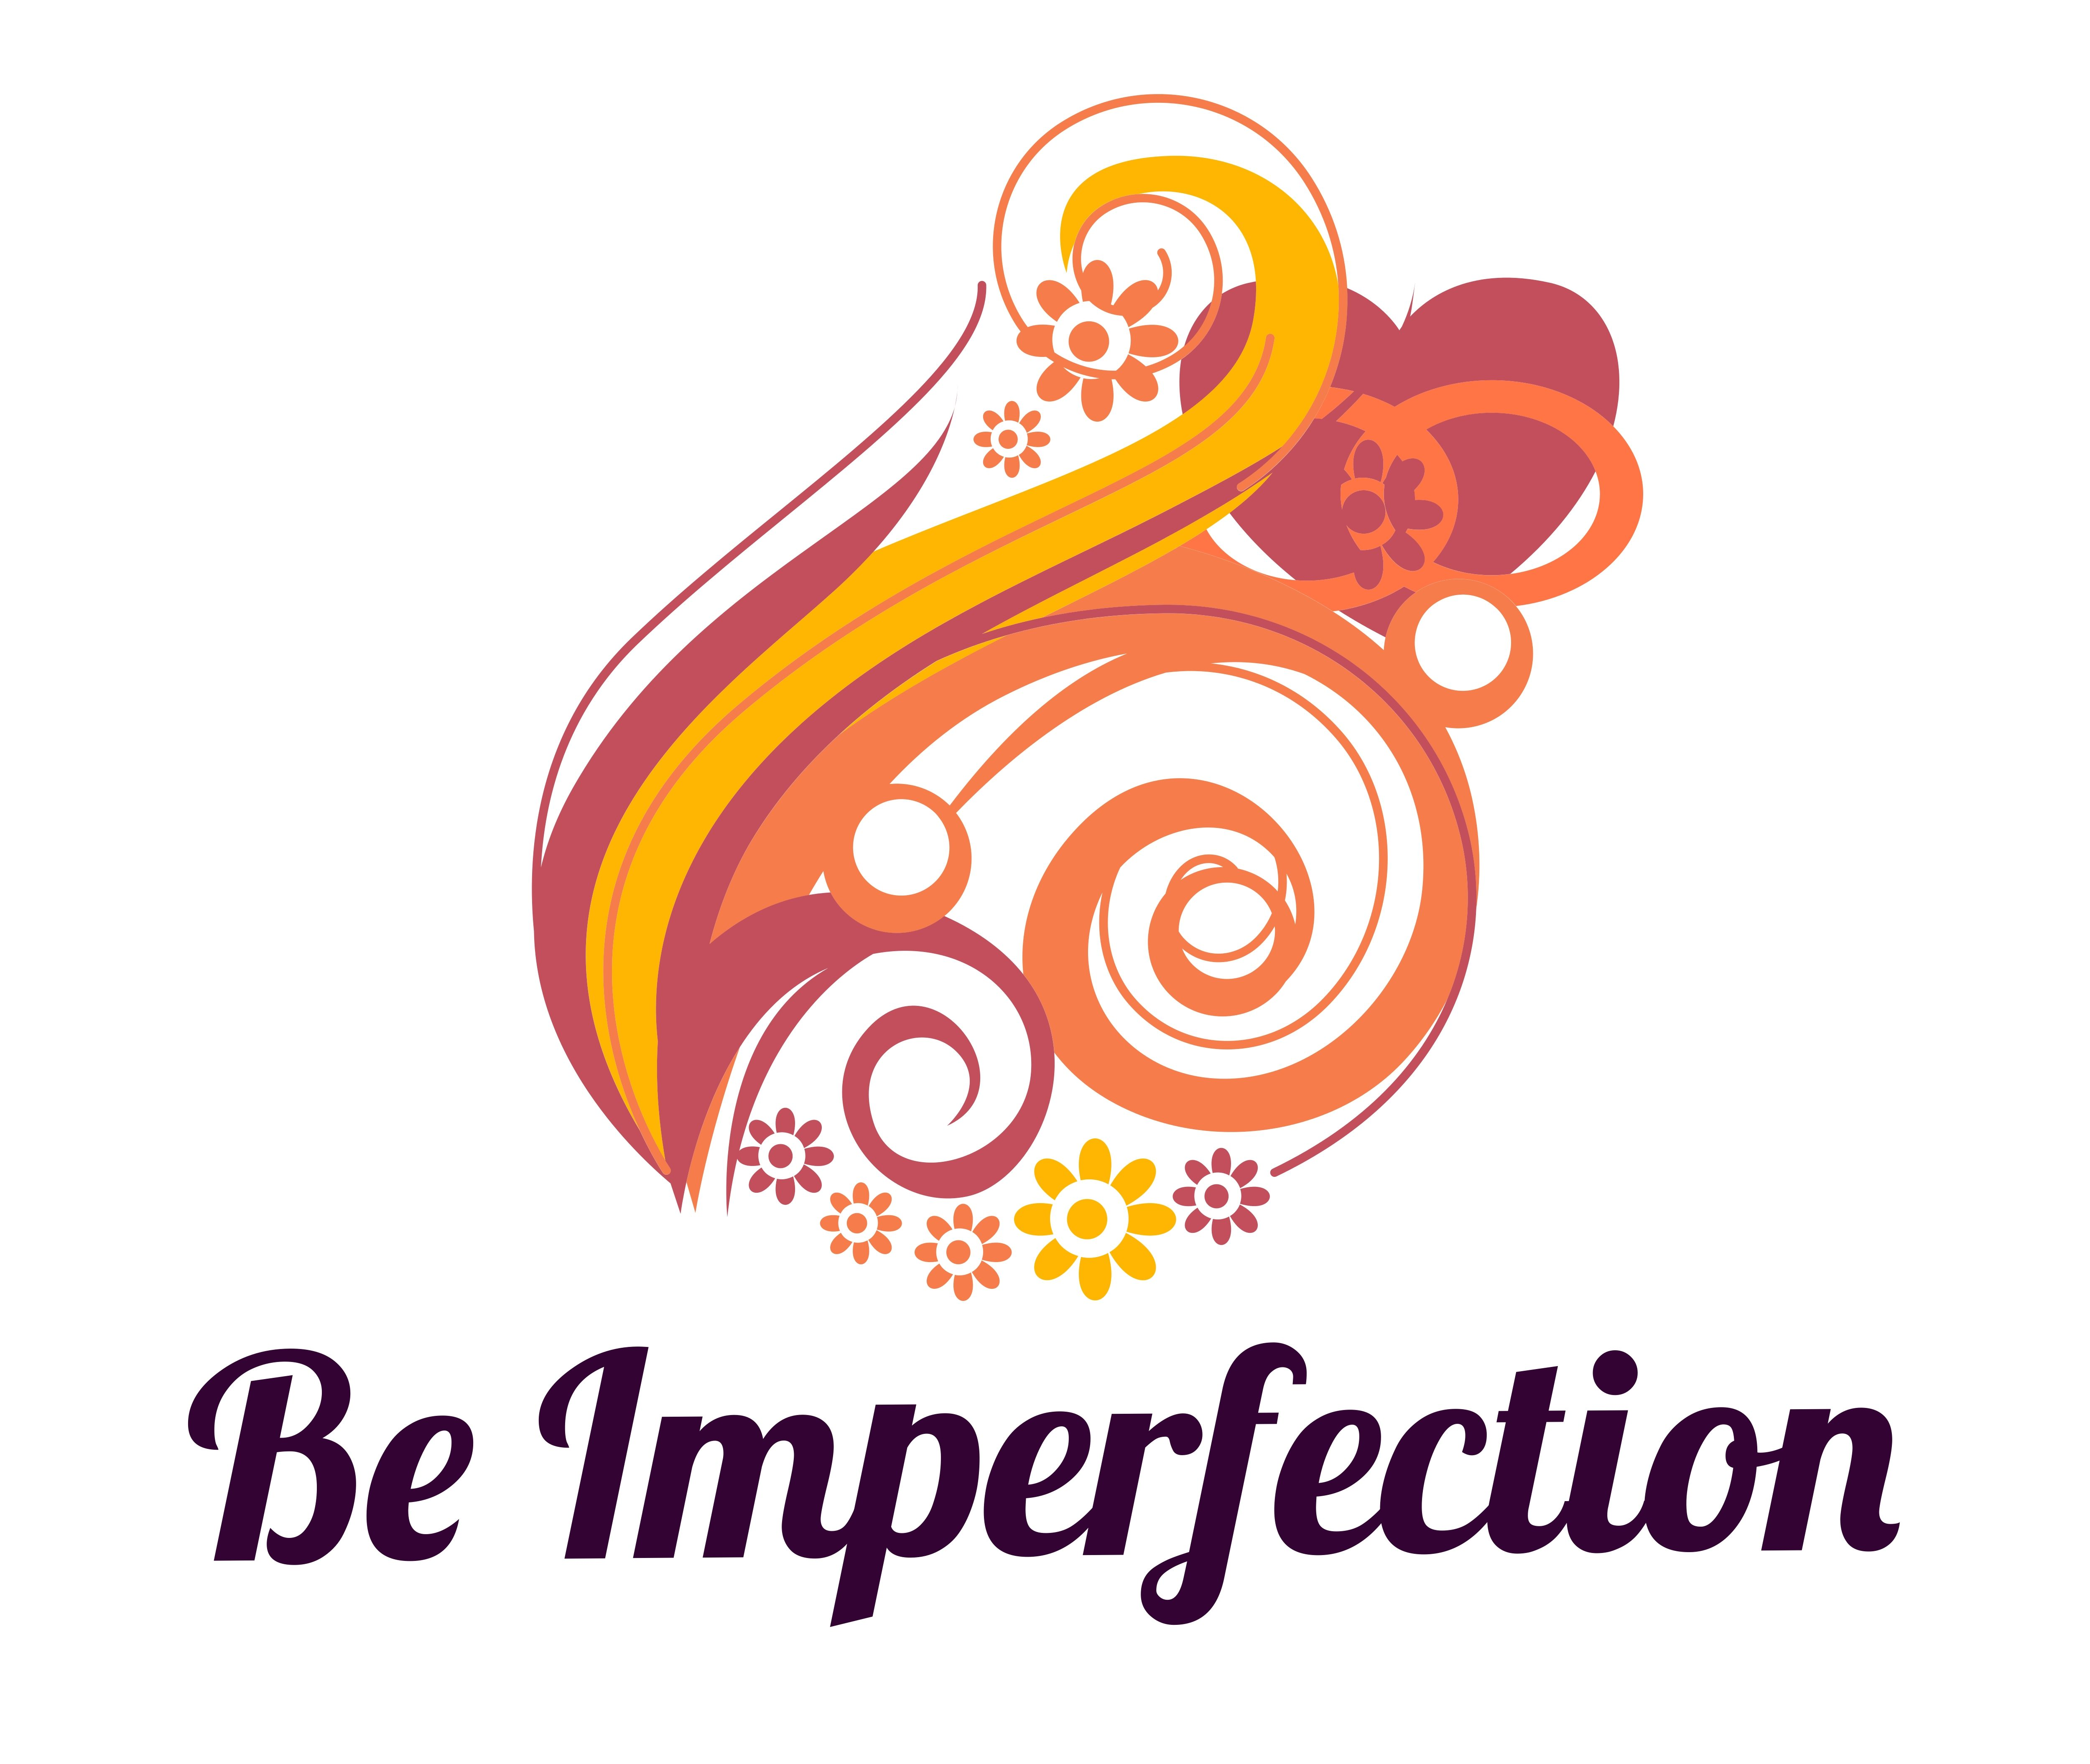 Be Imperfection